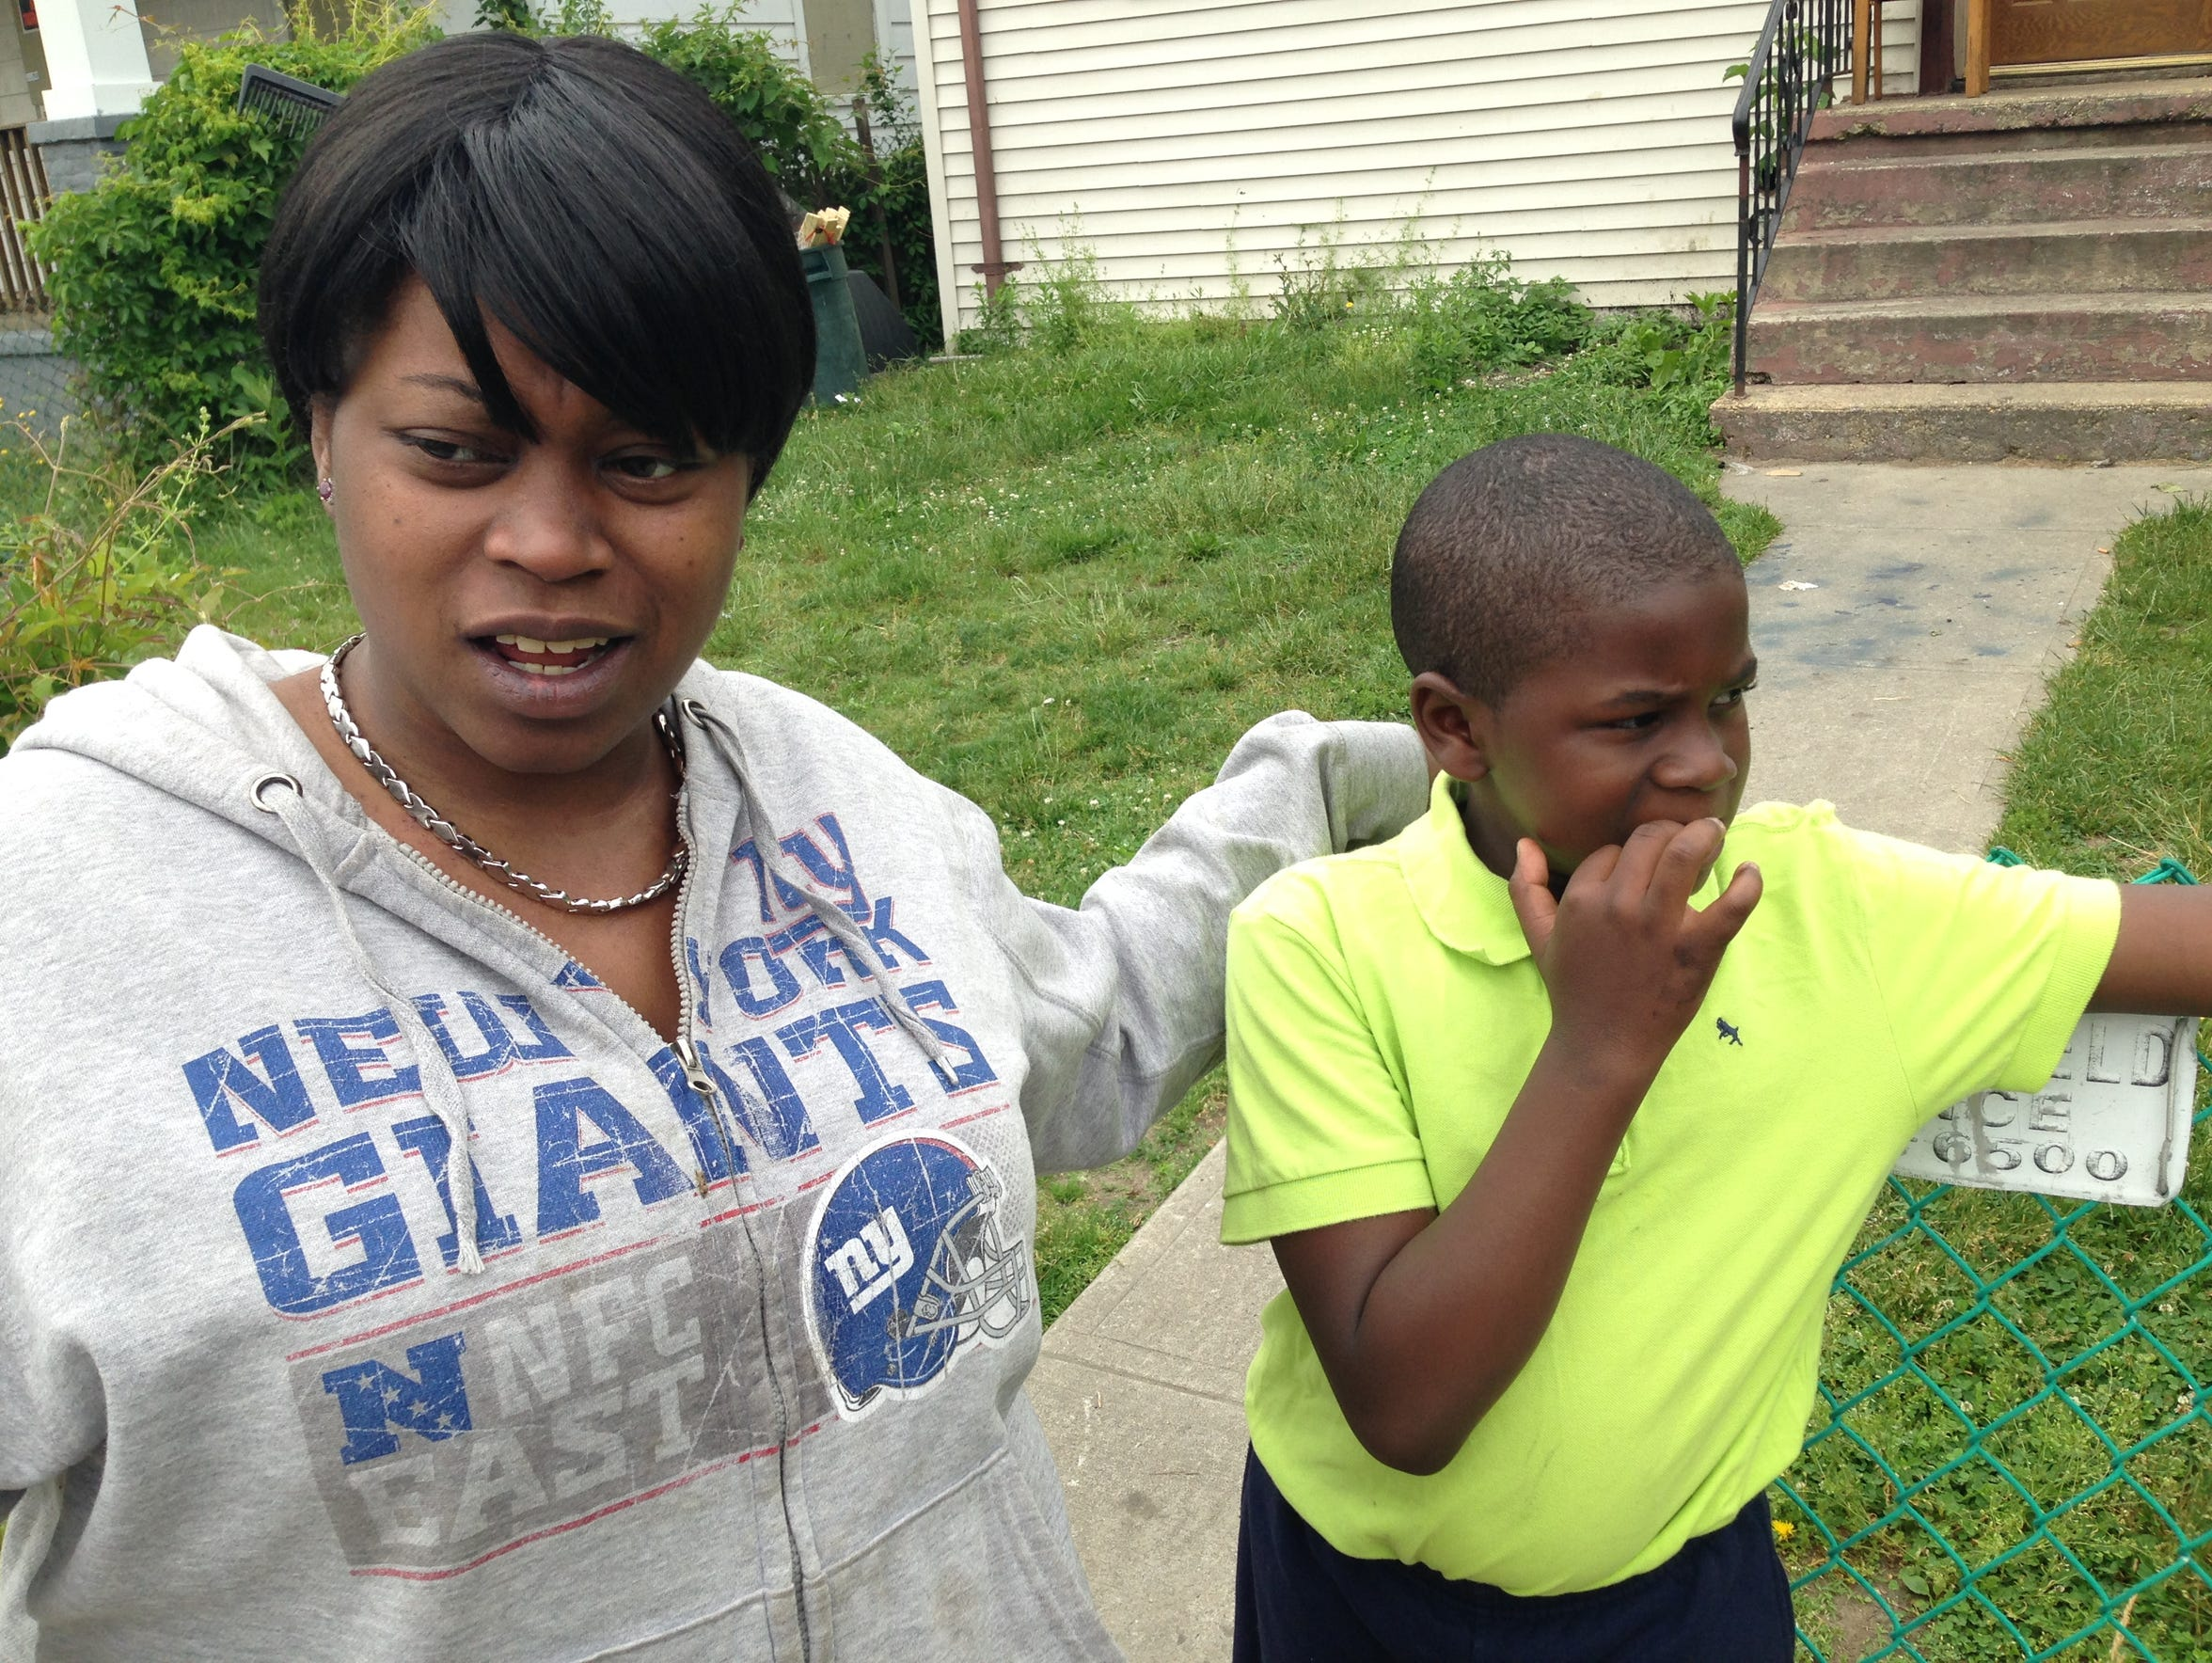 A year later, Sewell Avenue resident Lakayla Crumes,